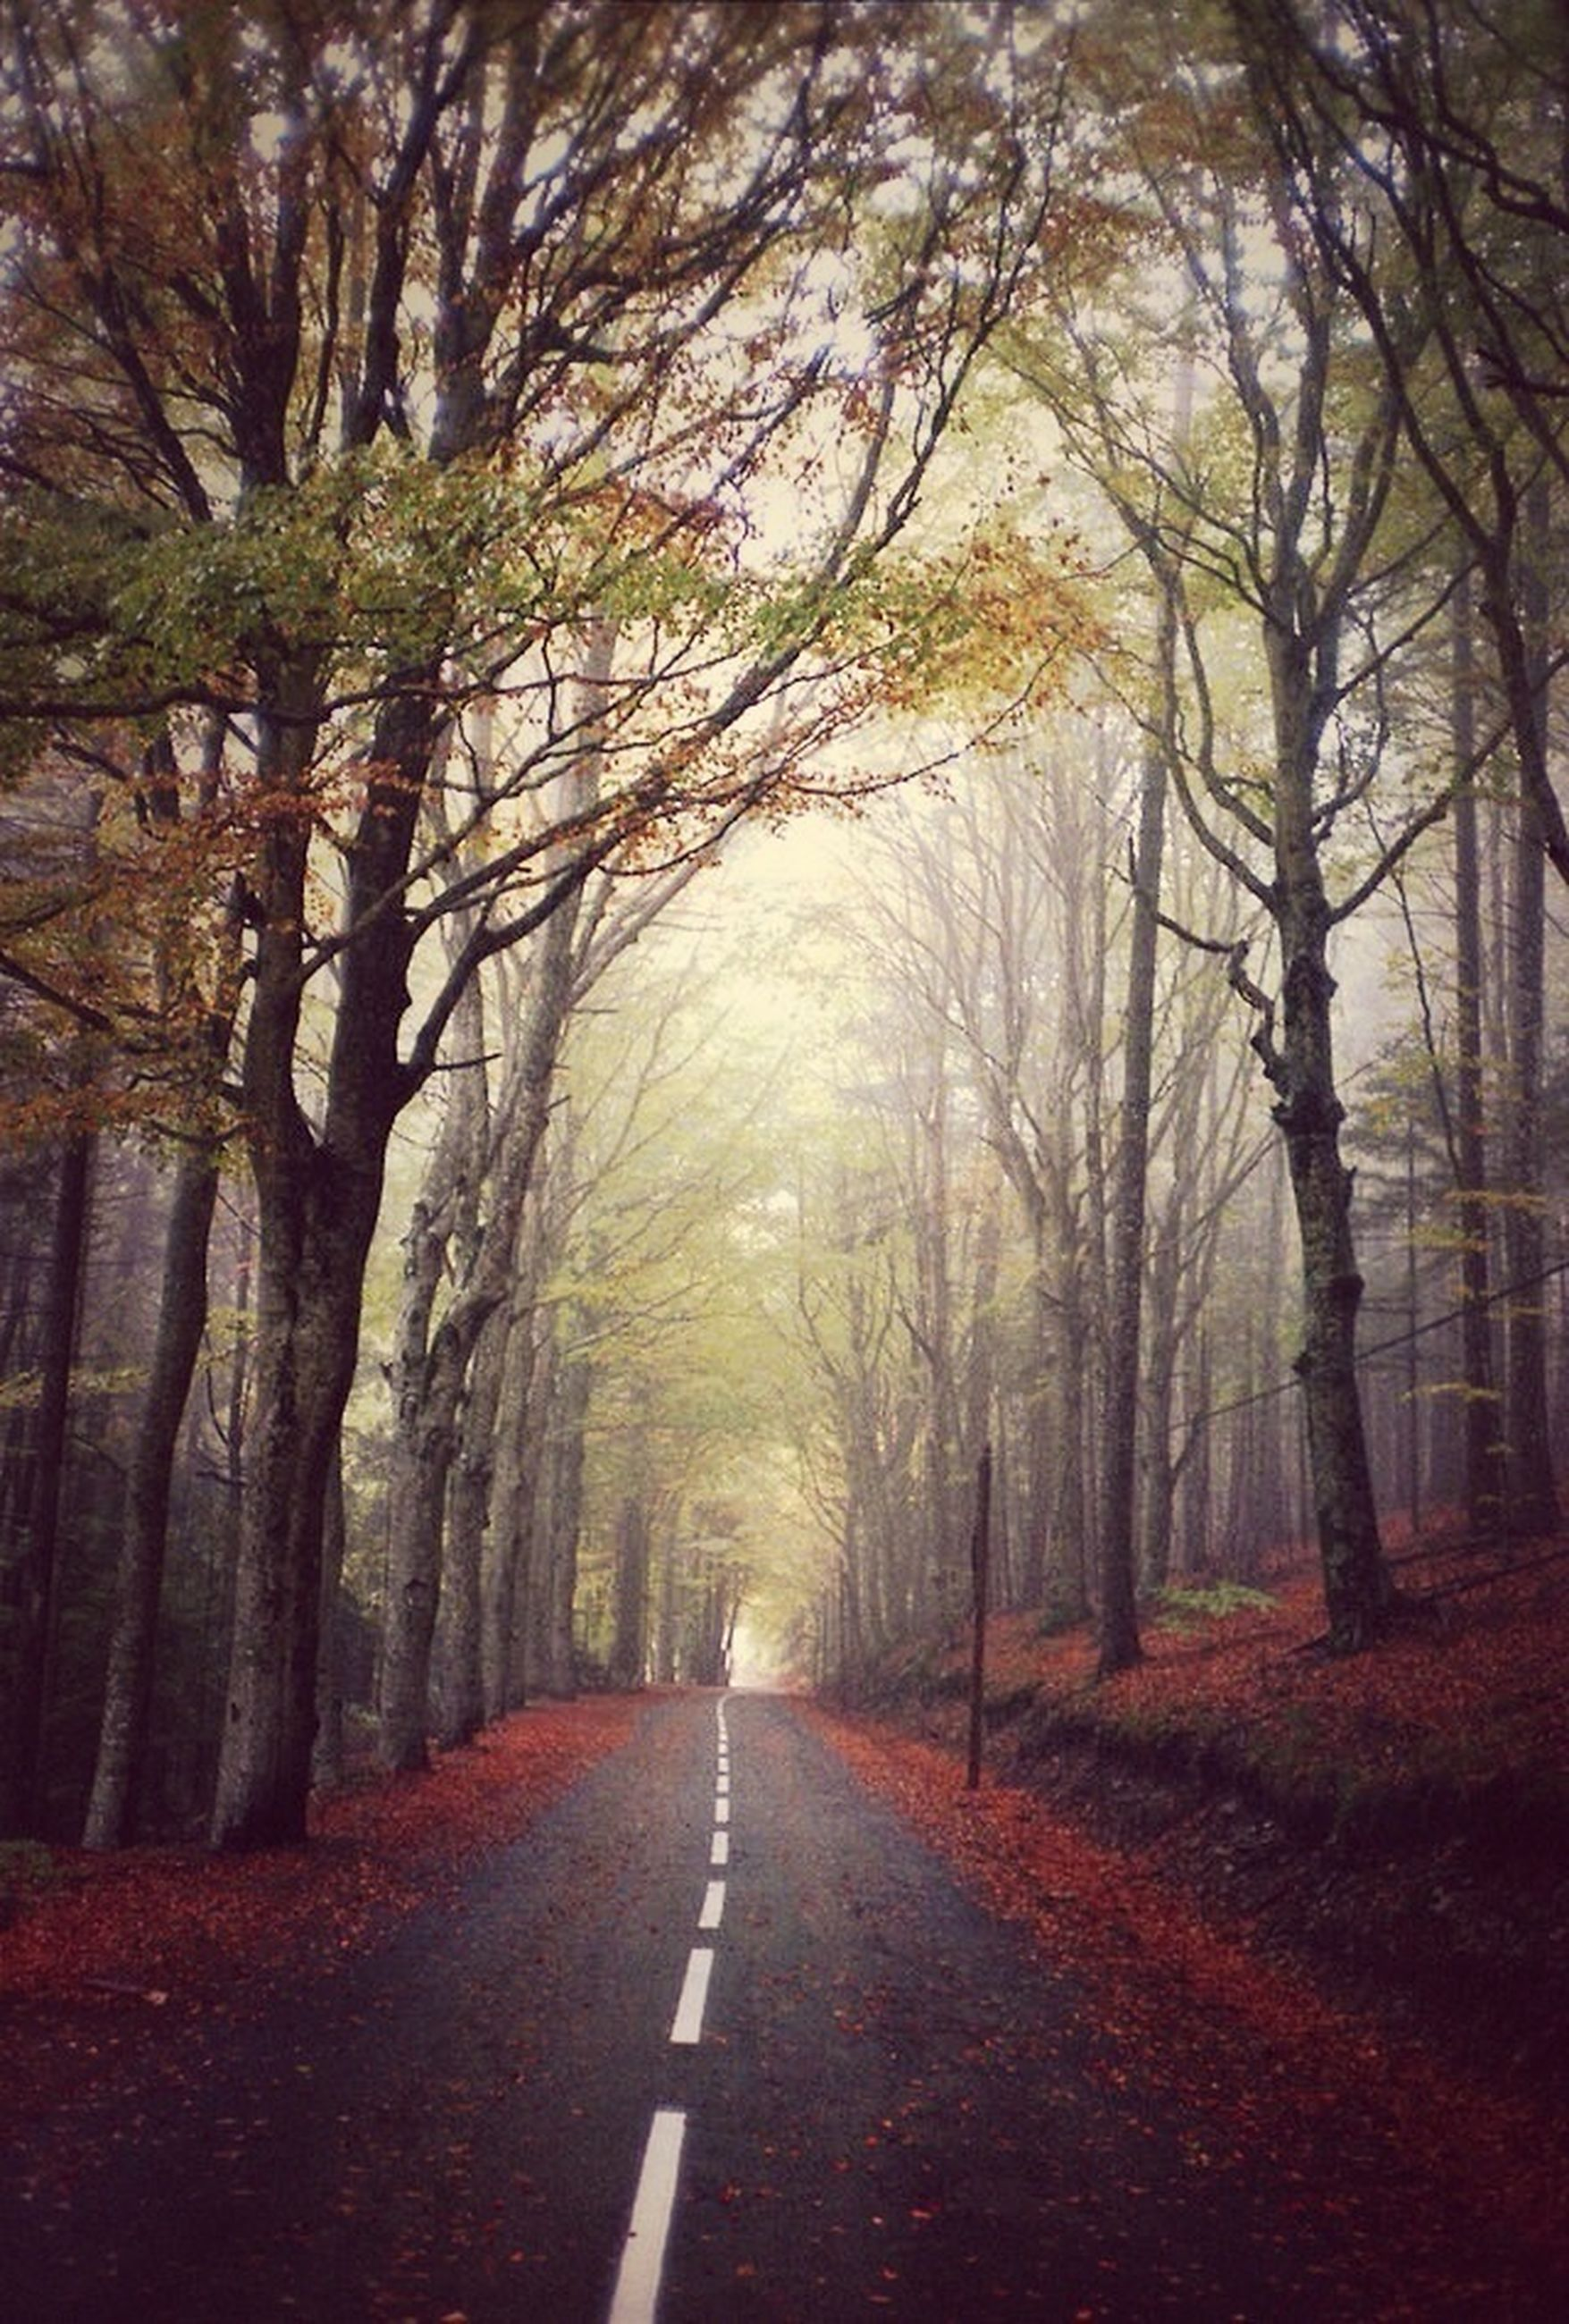 the way forward, tree, road, diminishing perspective, transportation, vanishing point, tranquility, country road, forest, empty road, road marking, tranquil scene, treelined, nature, growth, empty, scenics, beauty in nature, long, street